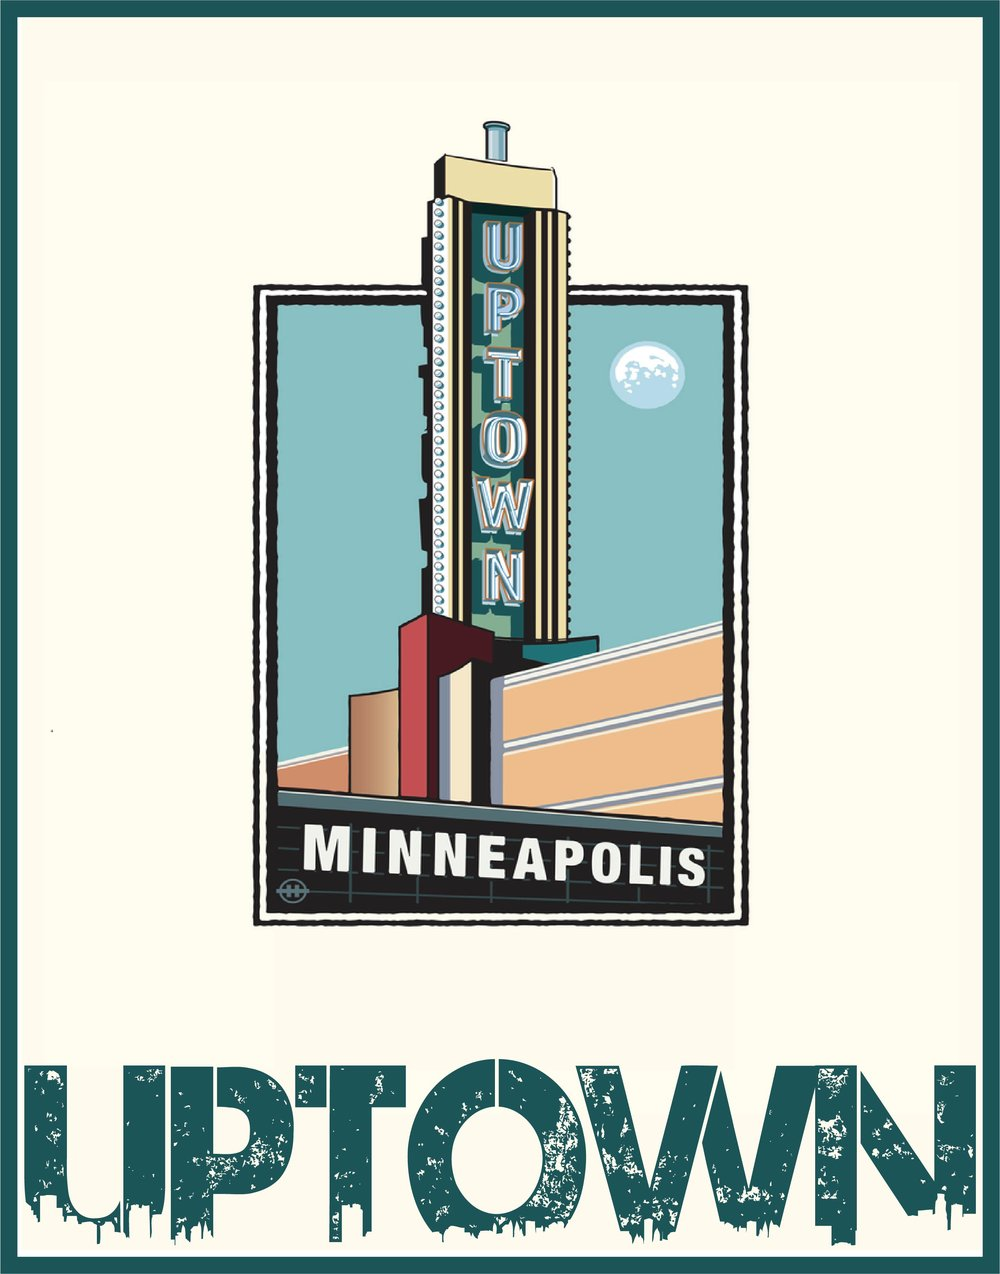 UPTOWN MINNEAPOLIS POSTER - Uptown Minneapolis poster, located in Bar Fly music venue.